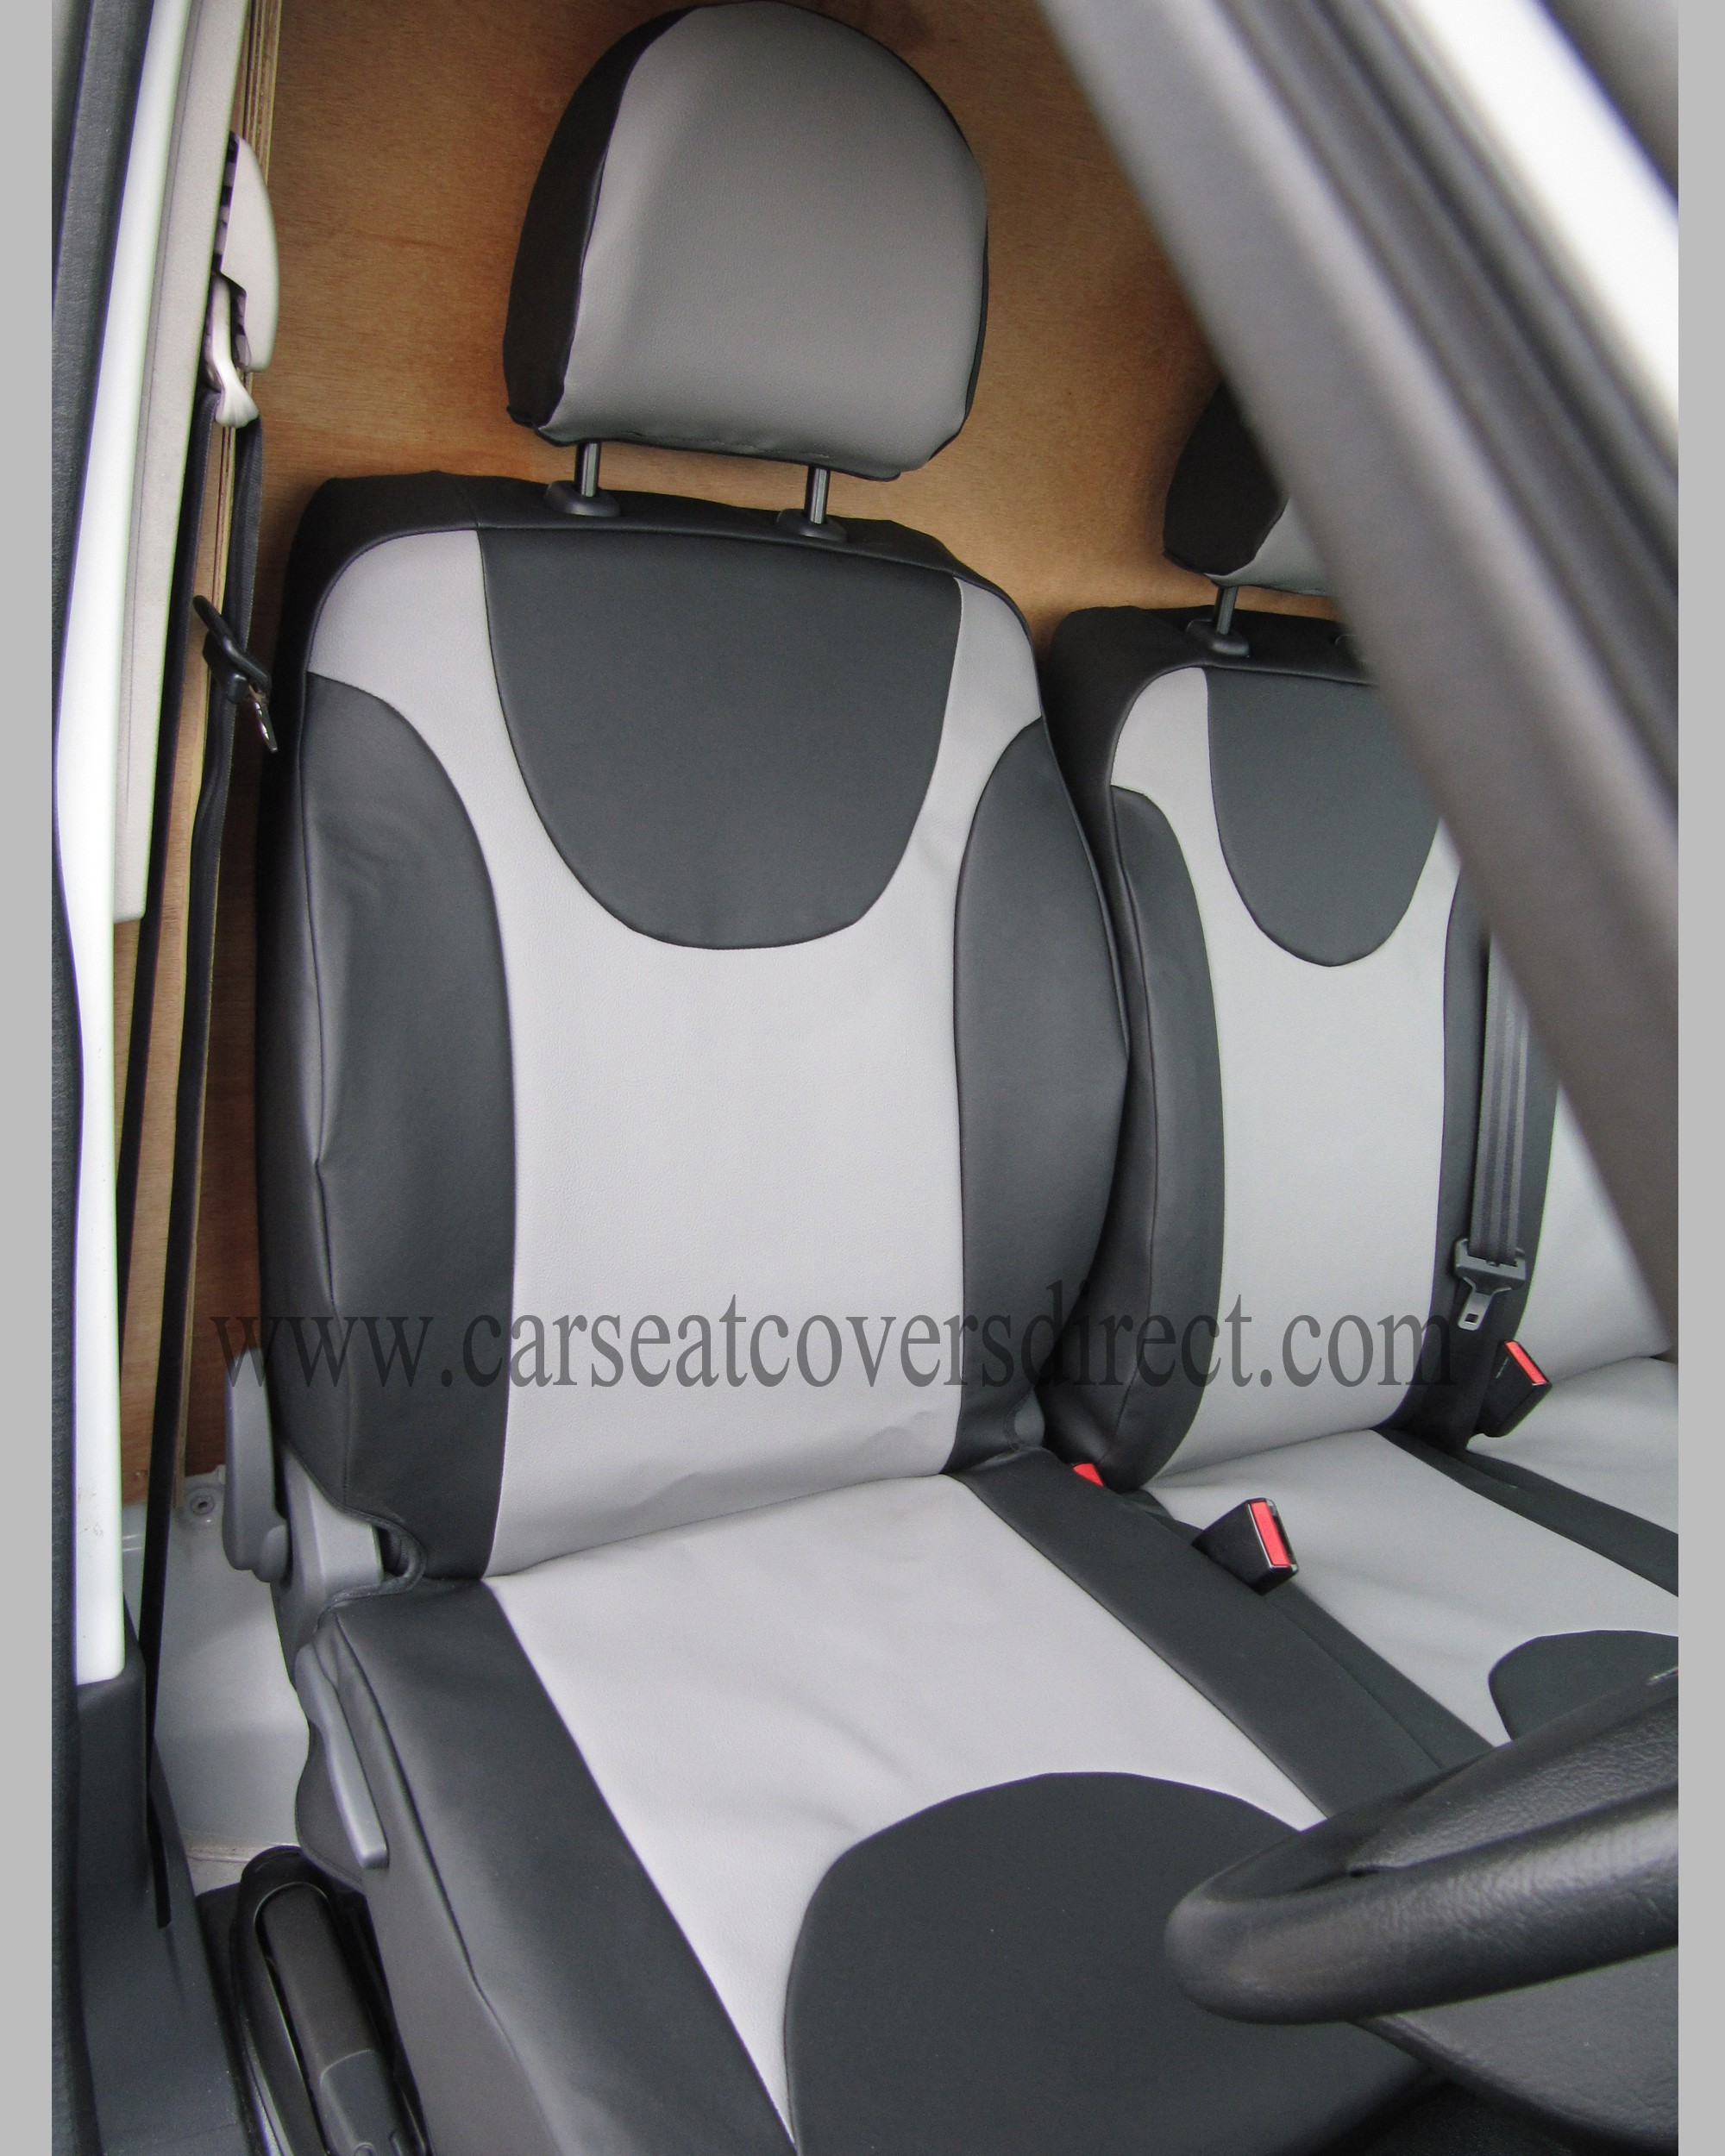 CITROEN DISPATCH Van seat covers